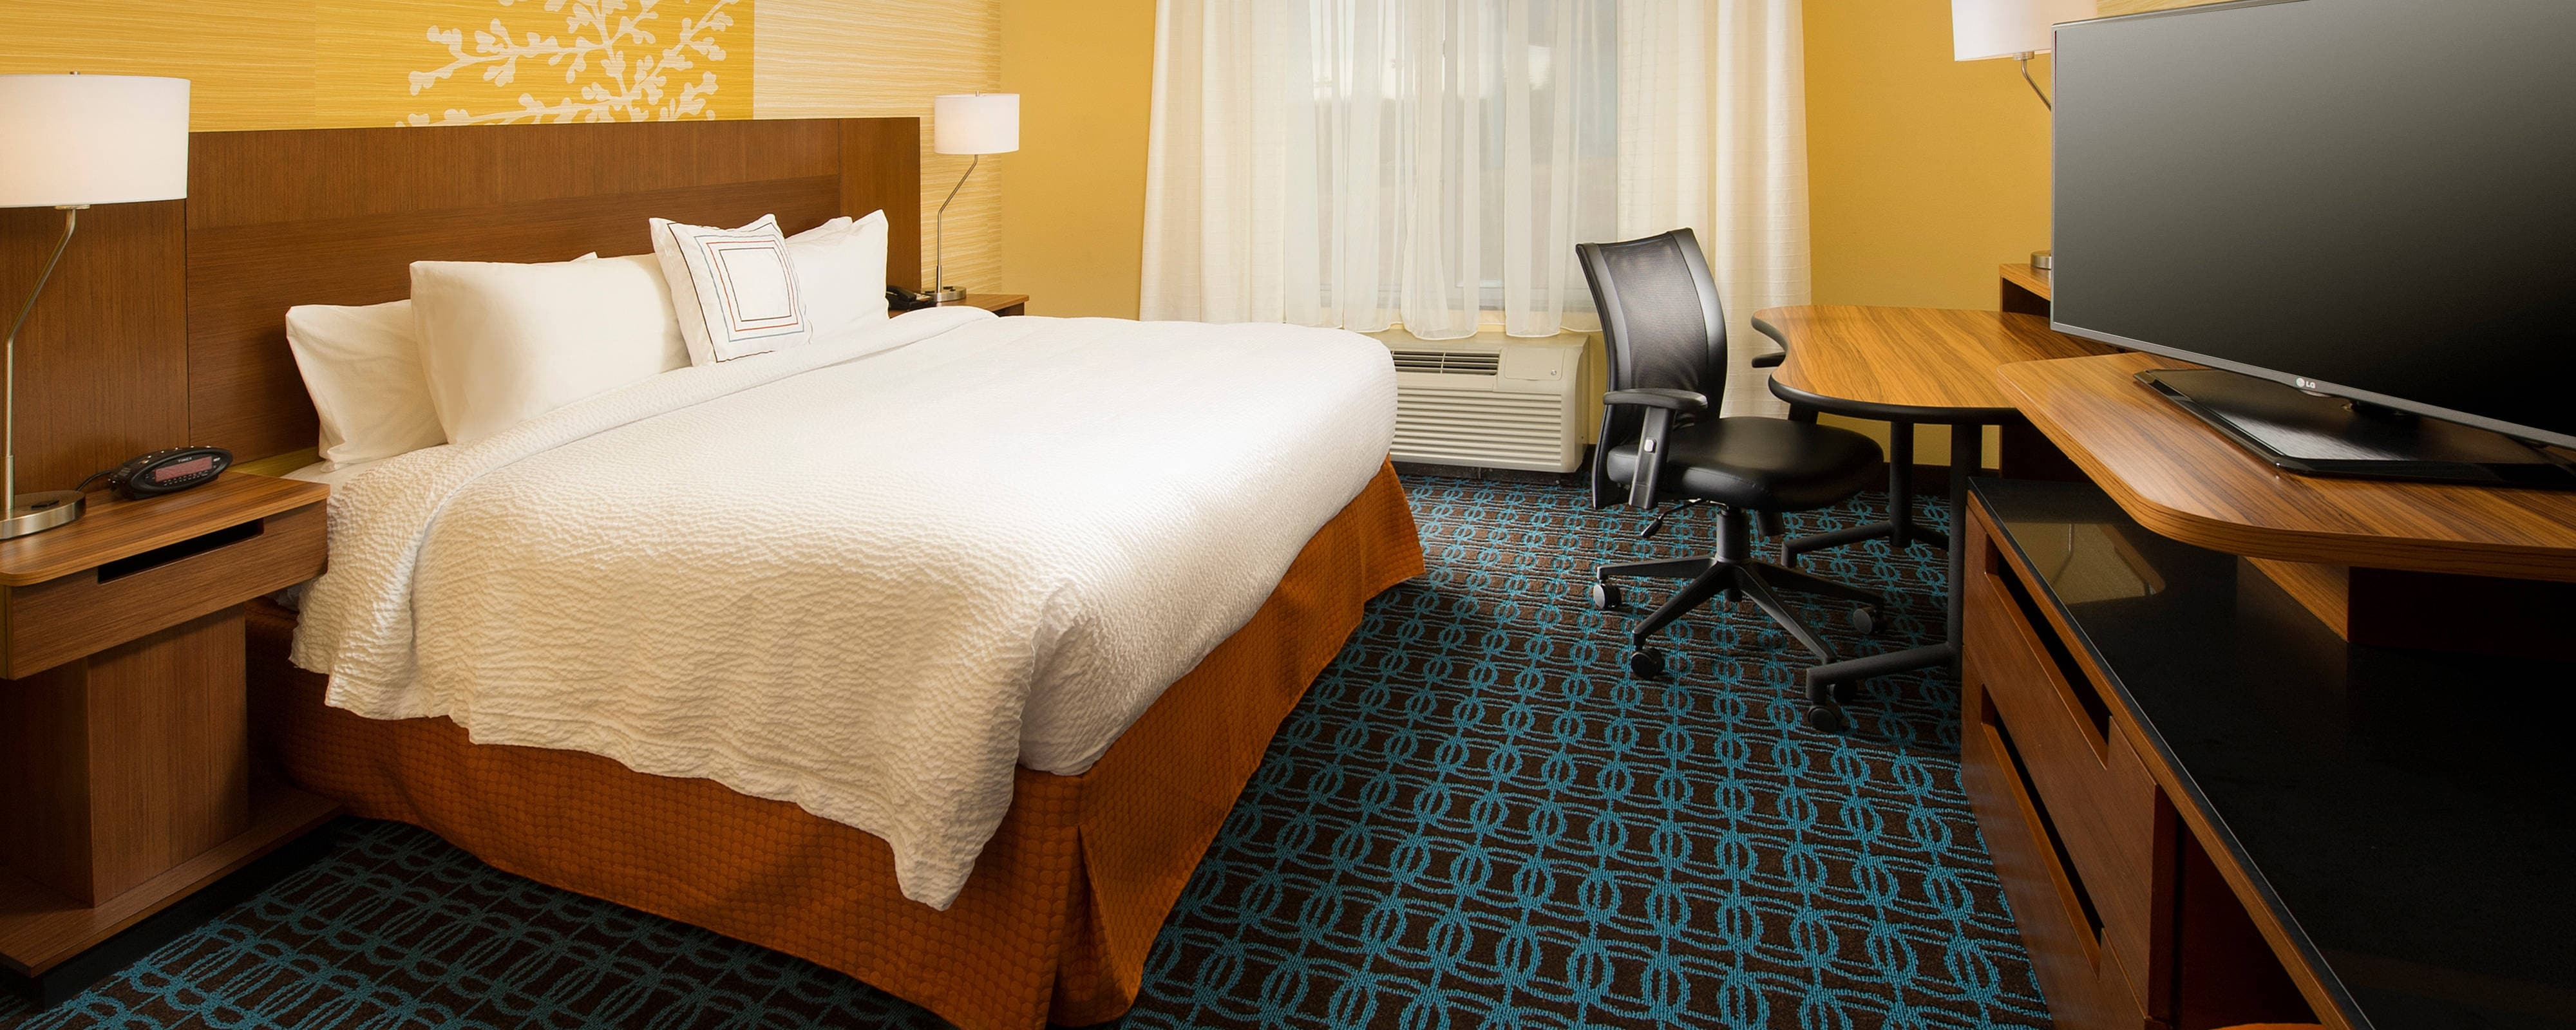 Fairfield Inn & Suites hotel rooms